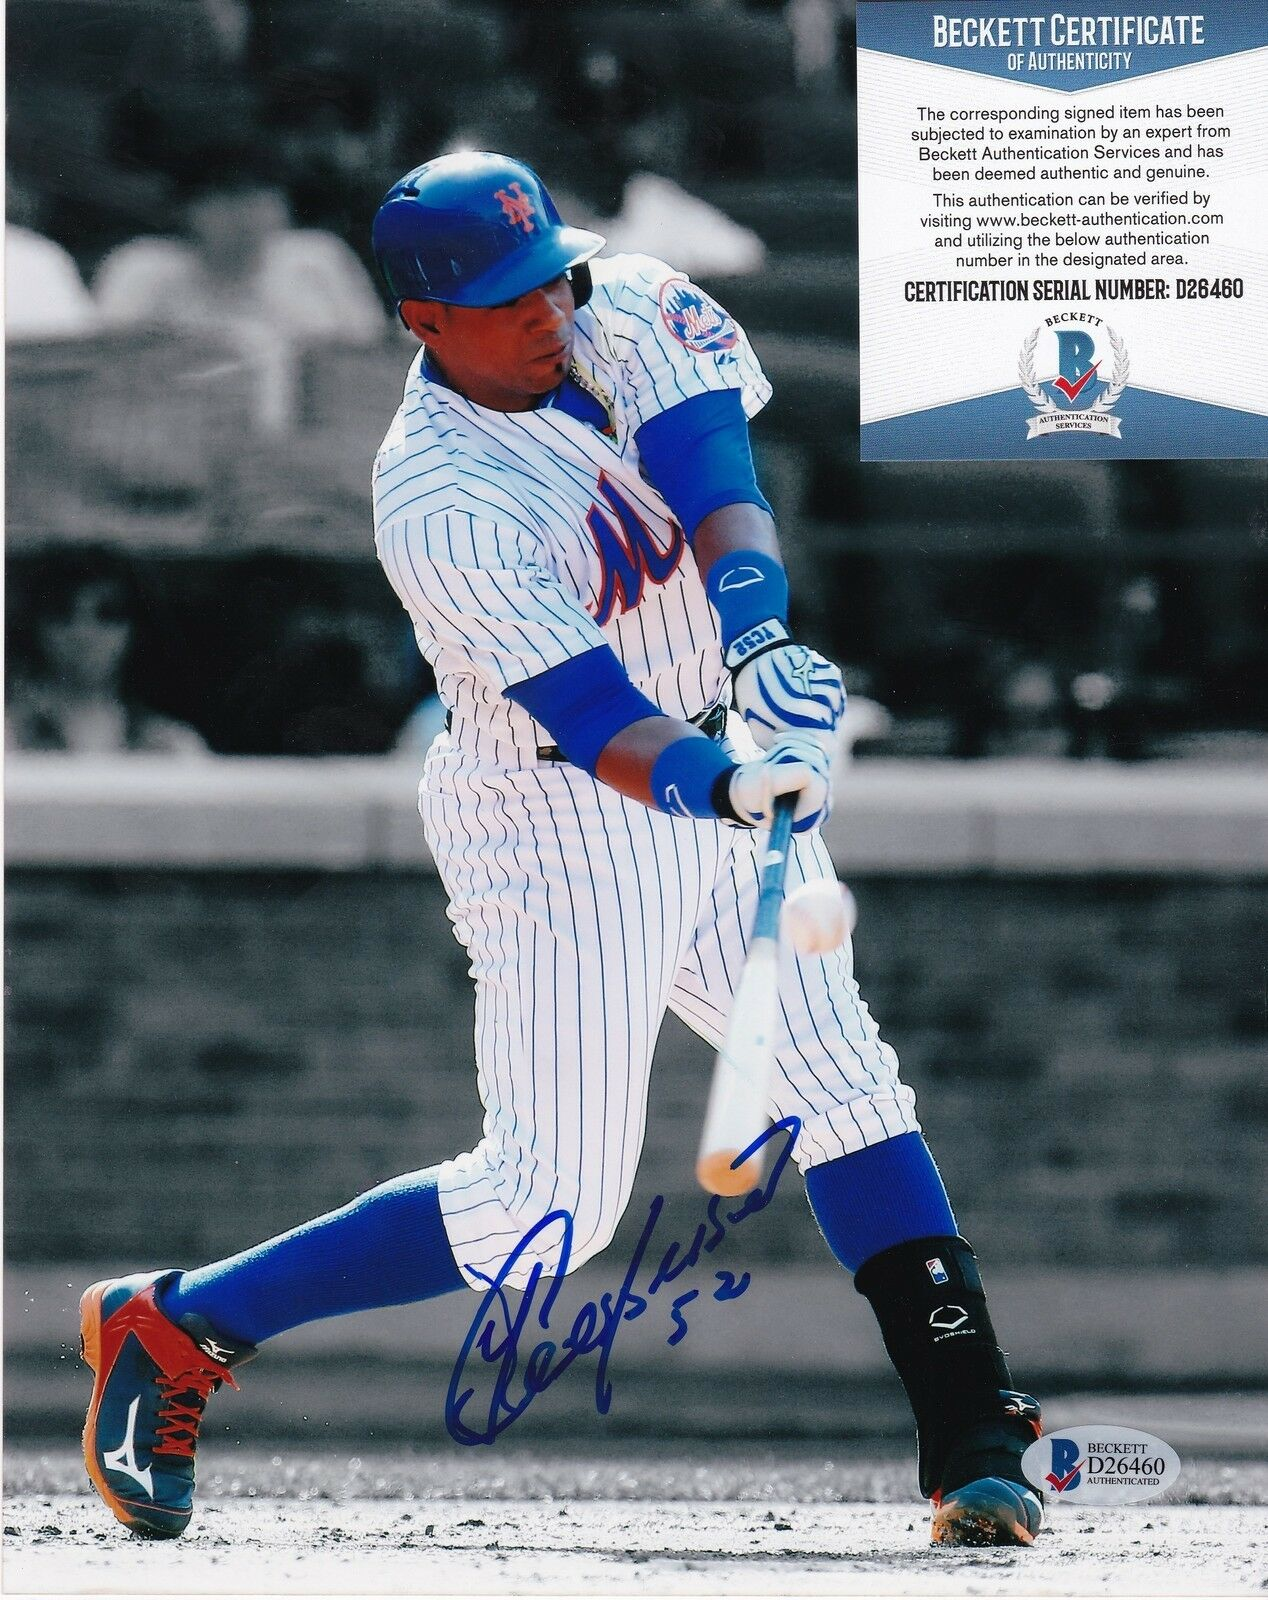 Yoenis Cespedes Nuevo York Mets Beckett Authenticated Acción Firmado 8x10